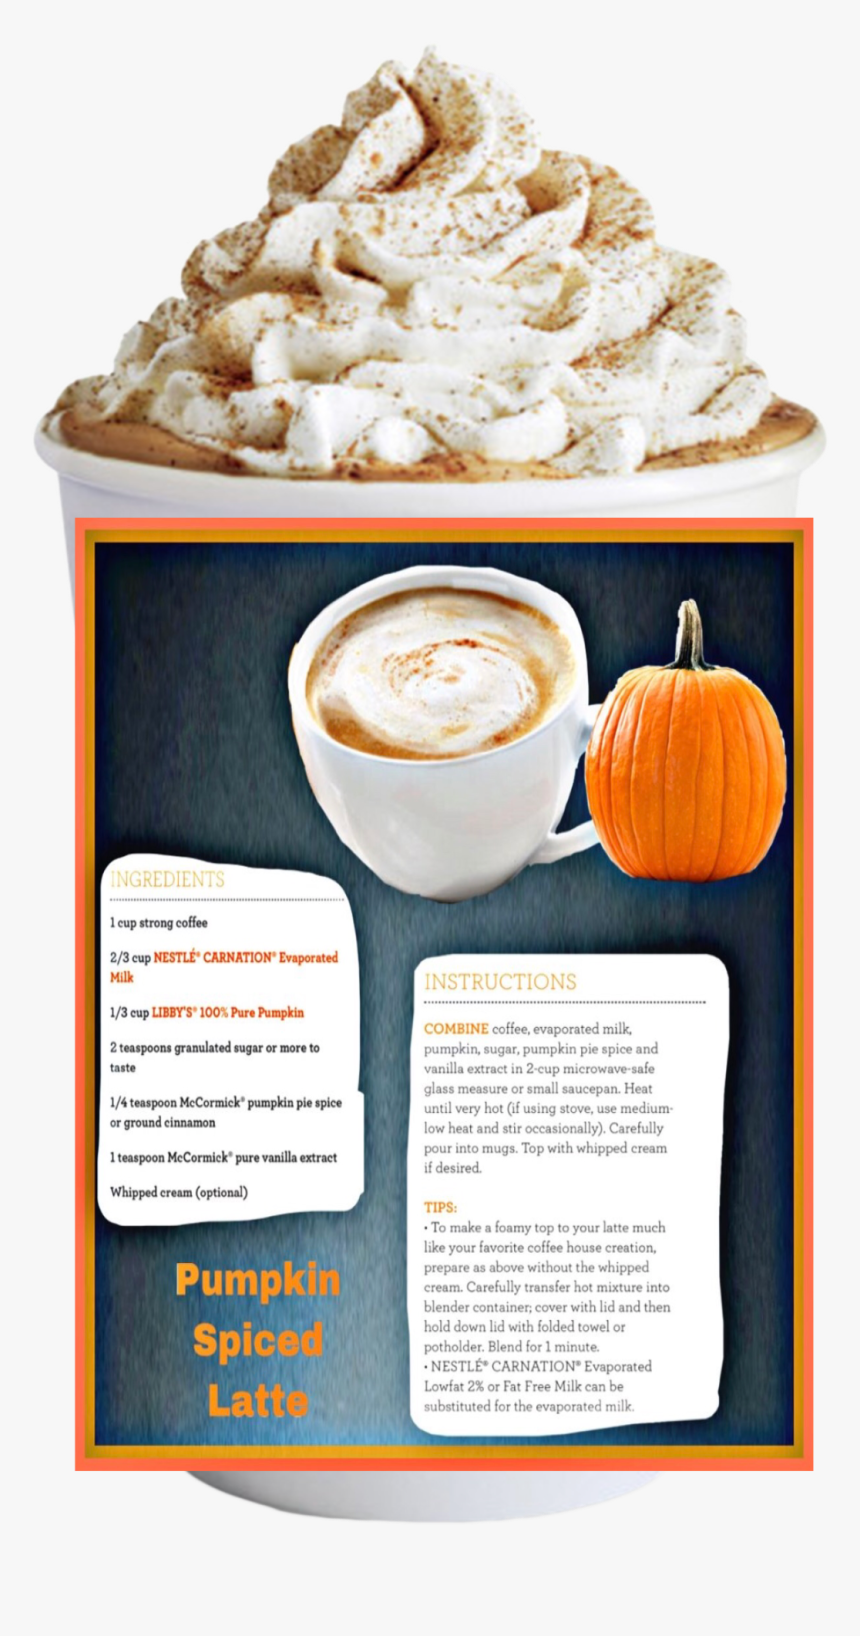 Pumpkin Spice Latte Recipe Starbucks Coffee Transparent Background Hd Png Download Transparent Png Image Pngitem